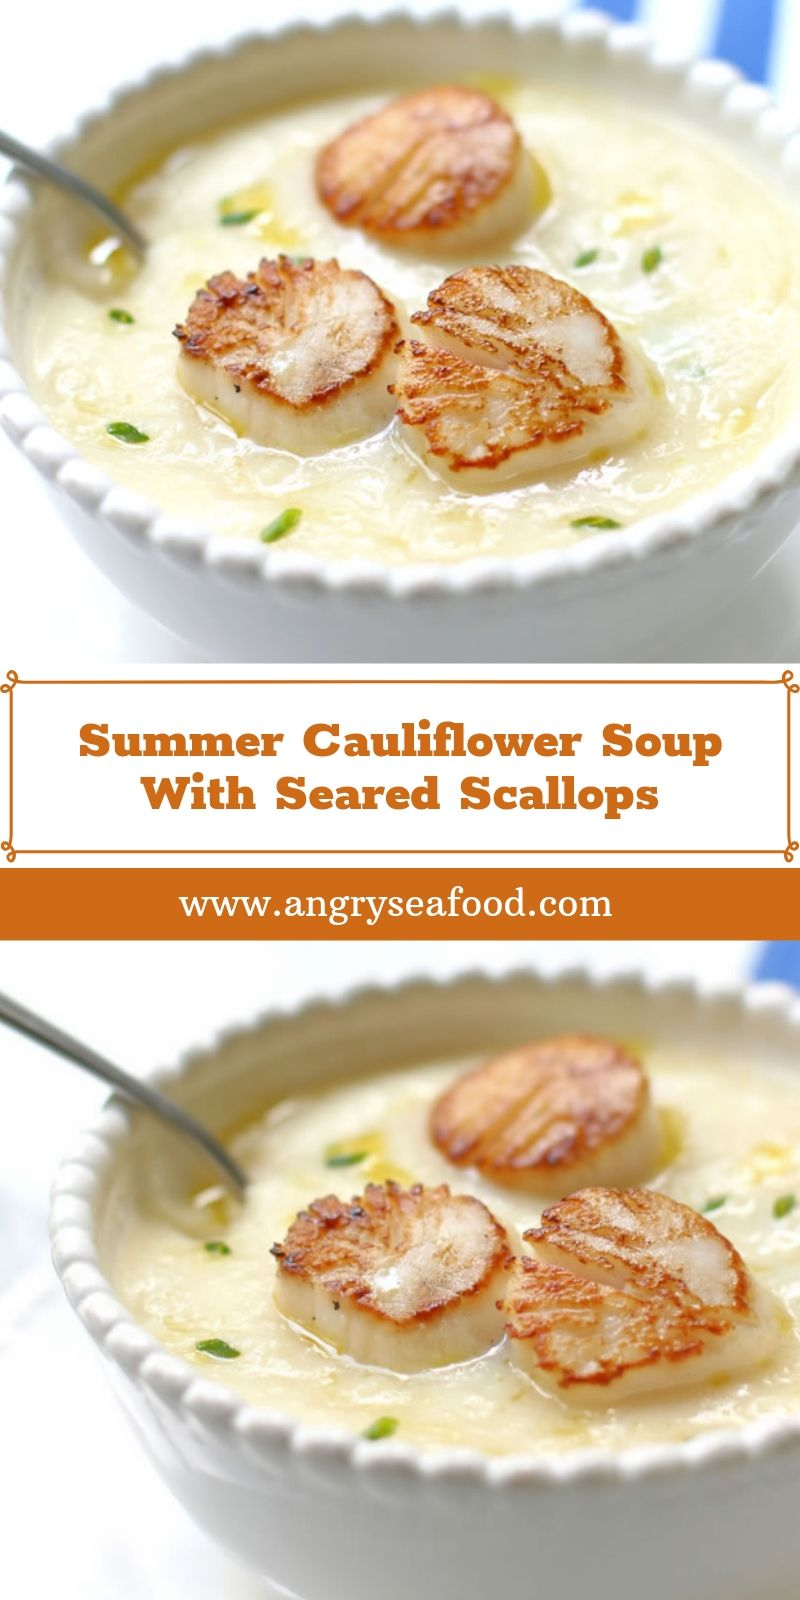 Summer Cauliflower Soup With Seared Scallops